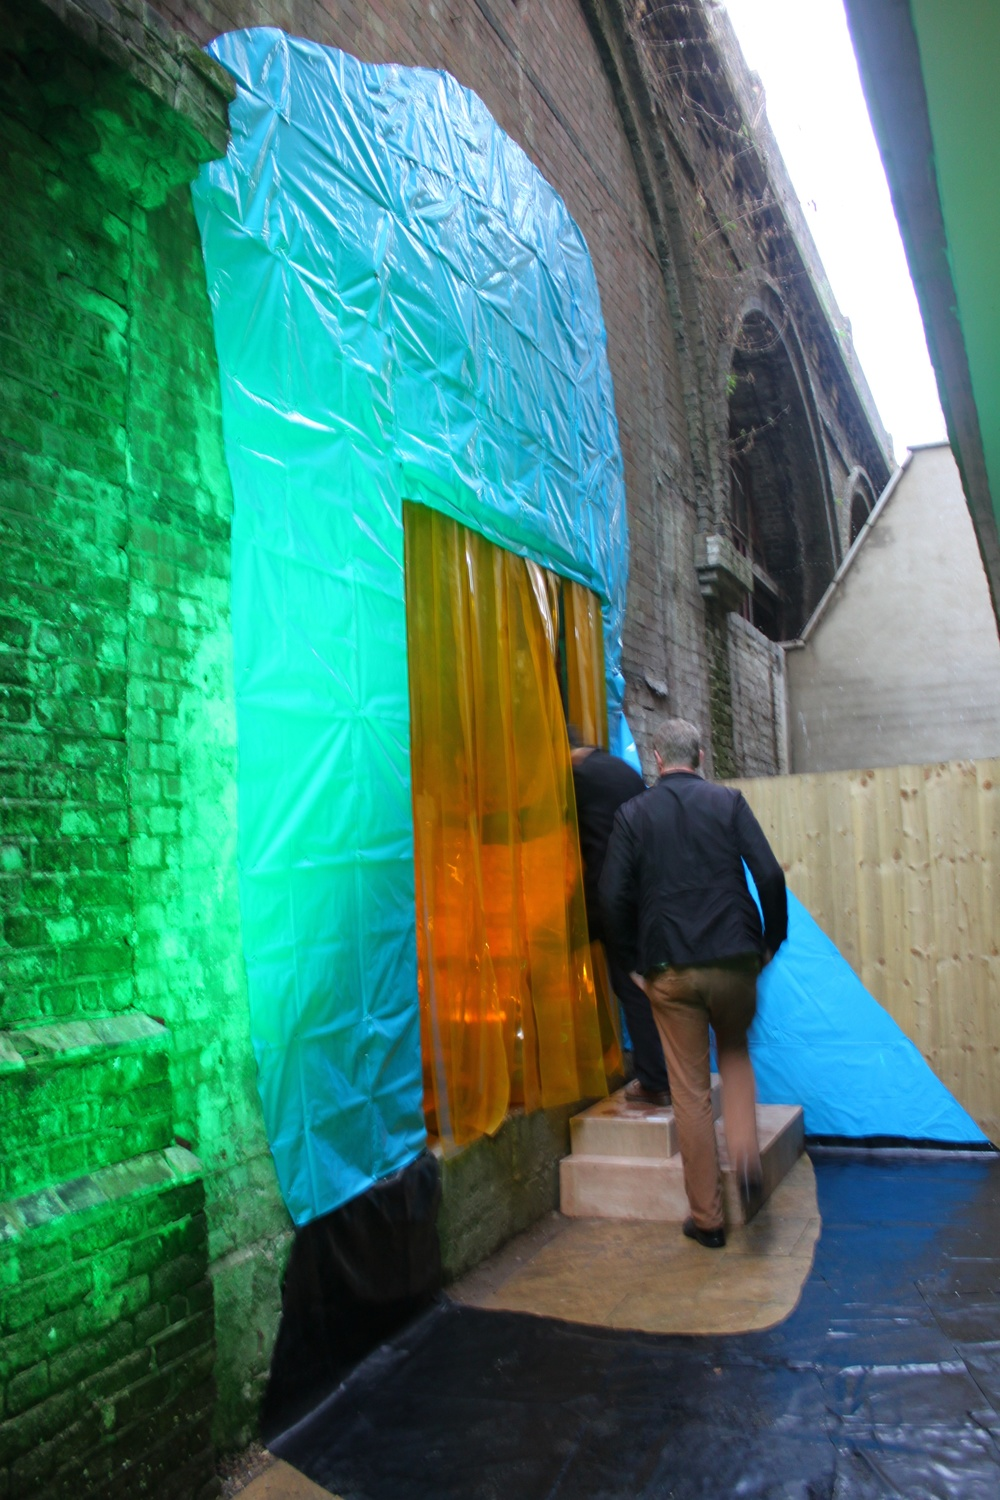 Portal (rail) , rubble sacks, rubber flooring, pvc strips, metal railing, Par 64 lights x 2, light gels, 440cm x 280cm x 240cm, 2013